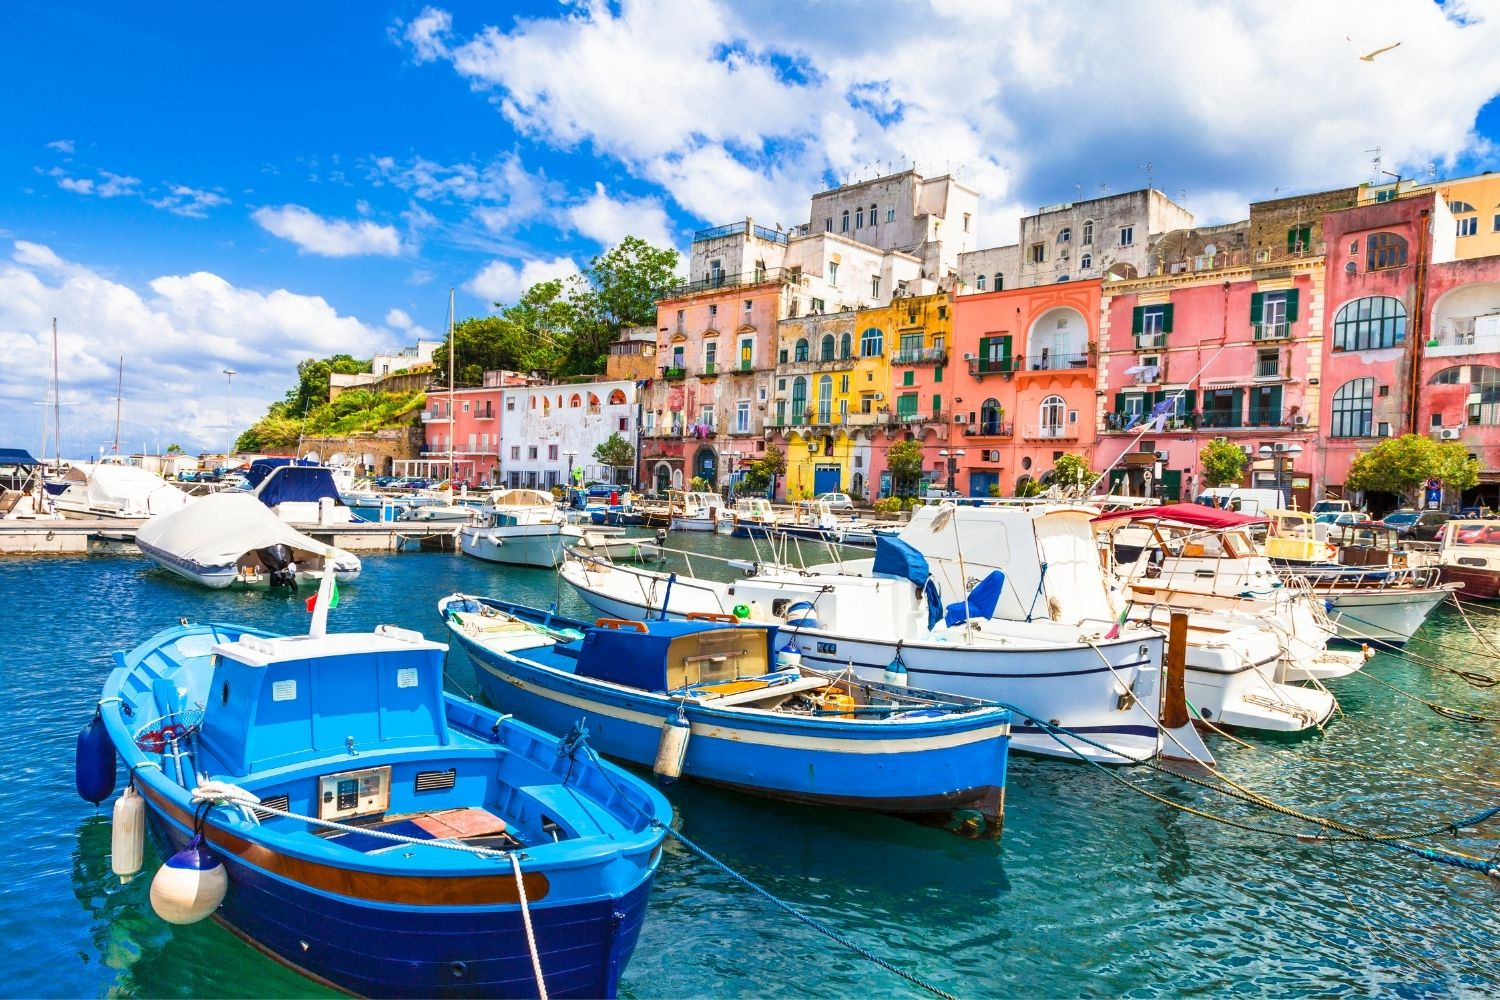 Capri harbor with colorful boats and houses